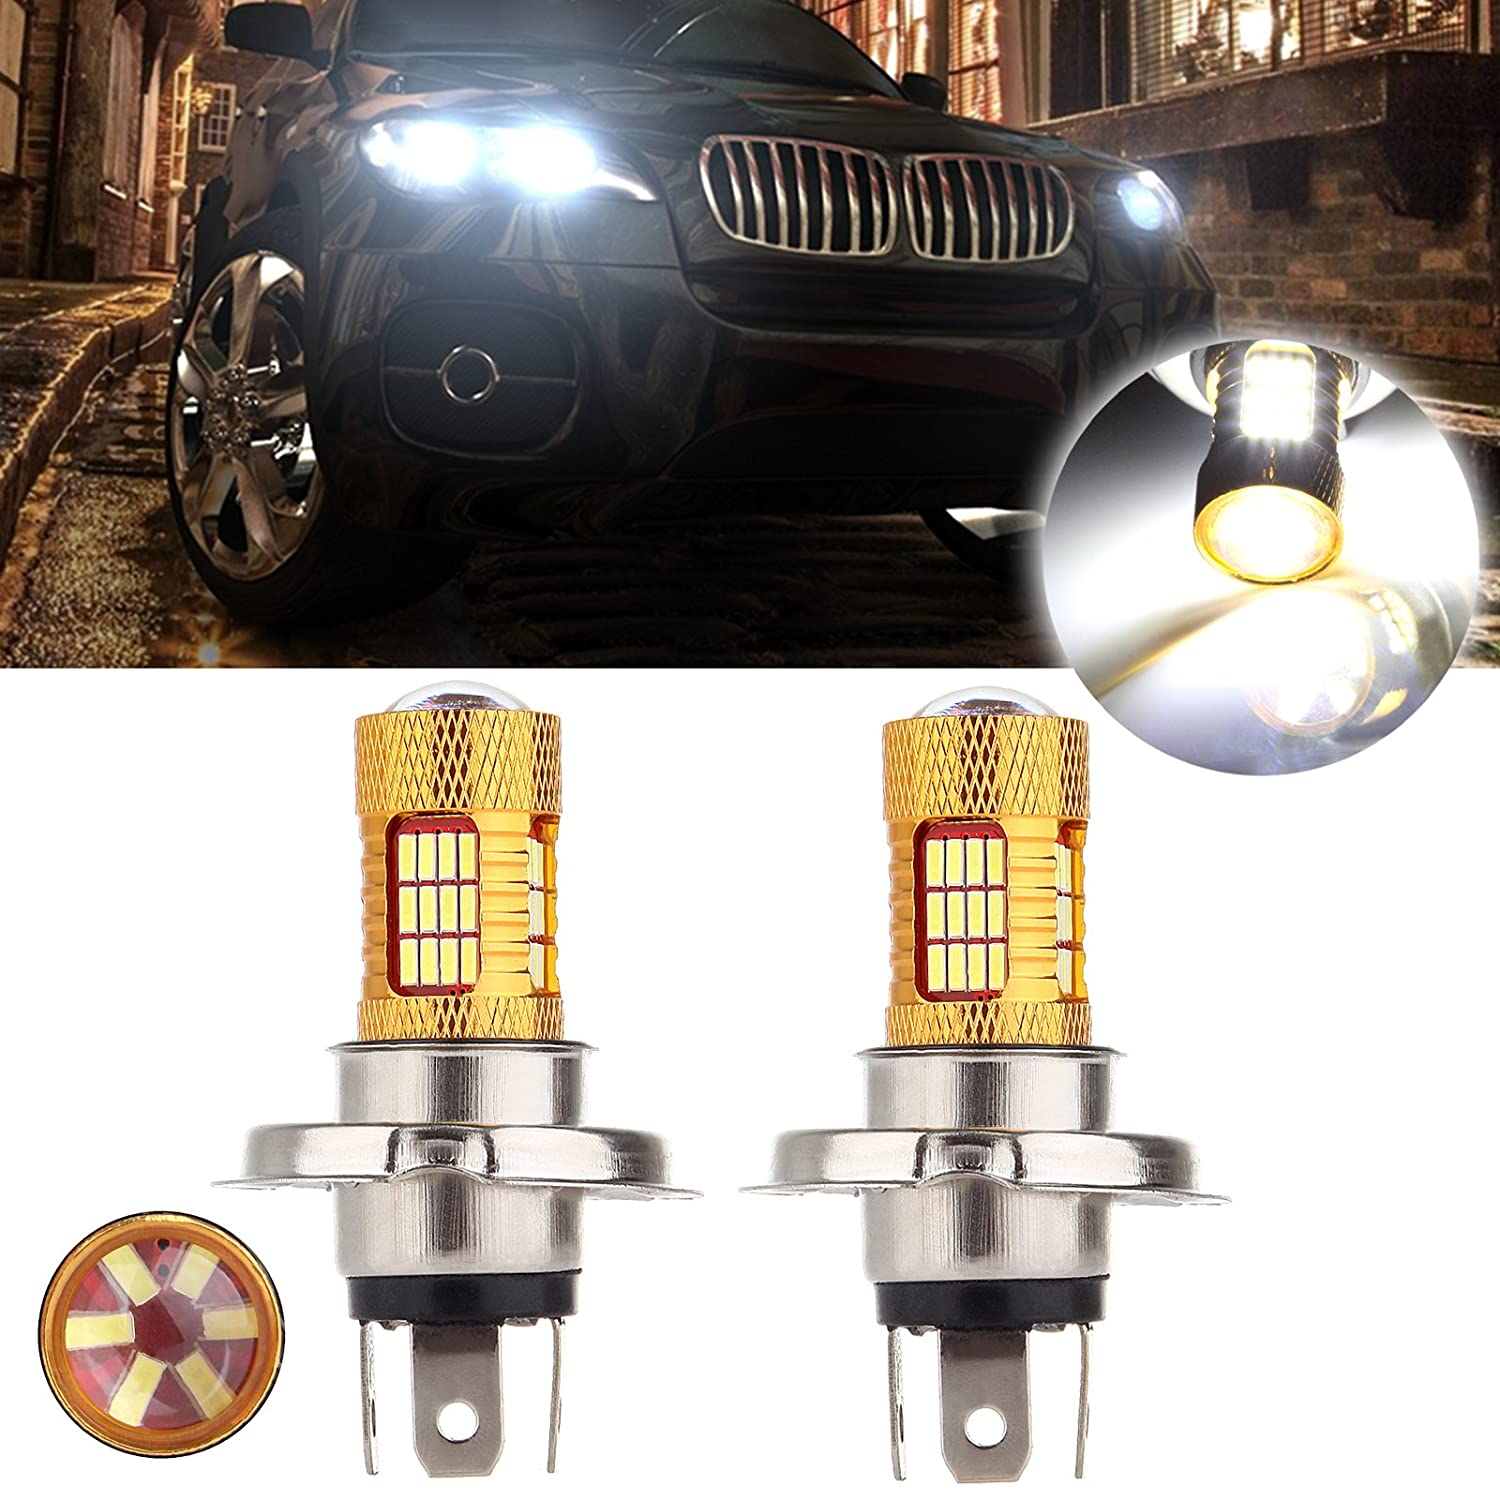 cciyu H4 Cree LED Light Bulb 9003 HB2 LED Bulb with Projector Replacement fit for Motorcycle Car Bike Fog Light Lamp,2 Pack Xenon White